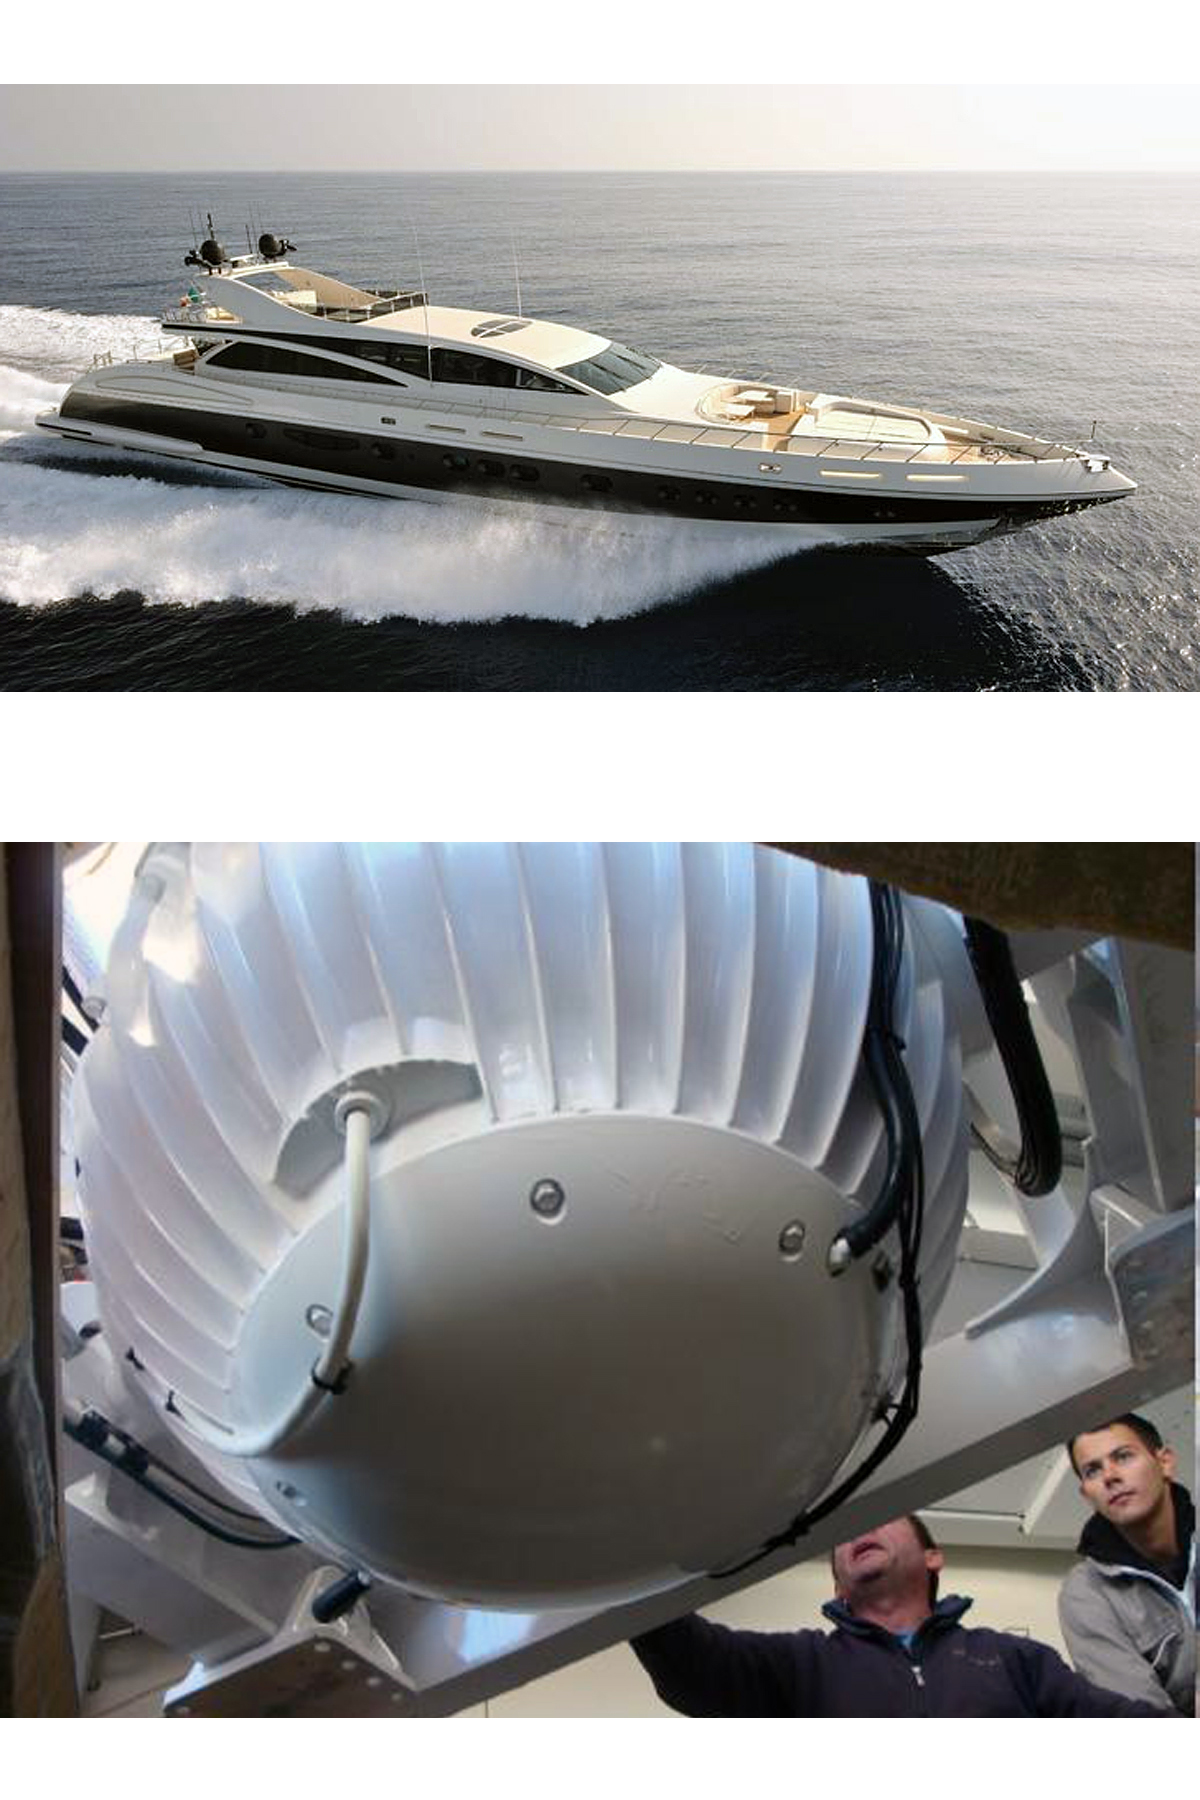 Image for article Seakeeper M21000 Gyro Stabilisers installed onboard Makira